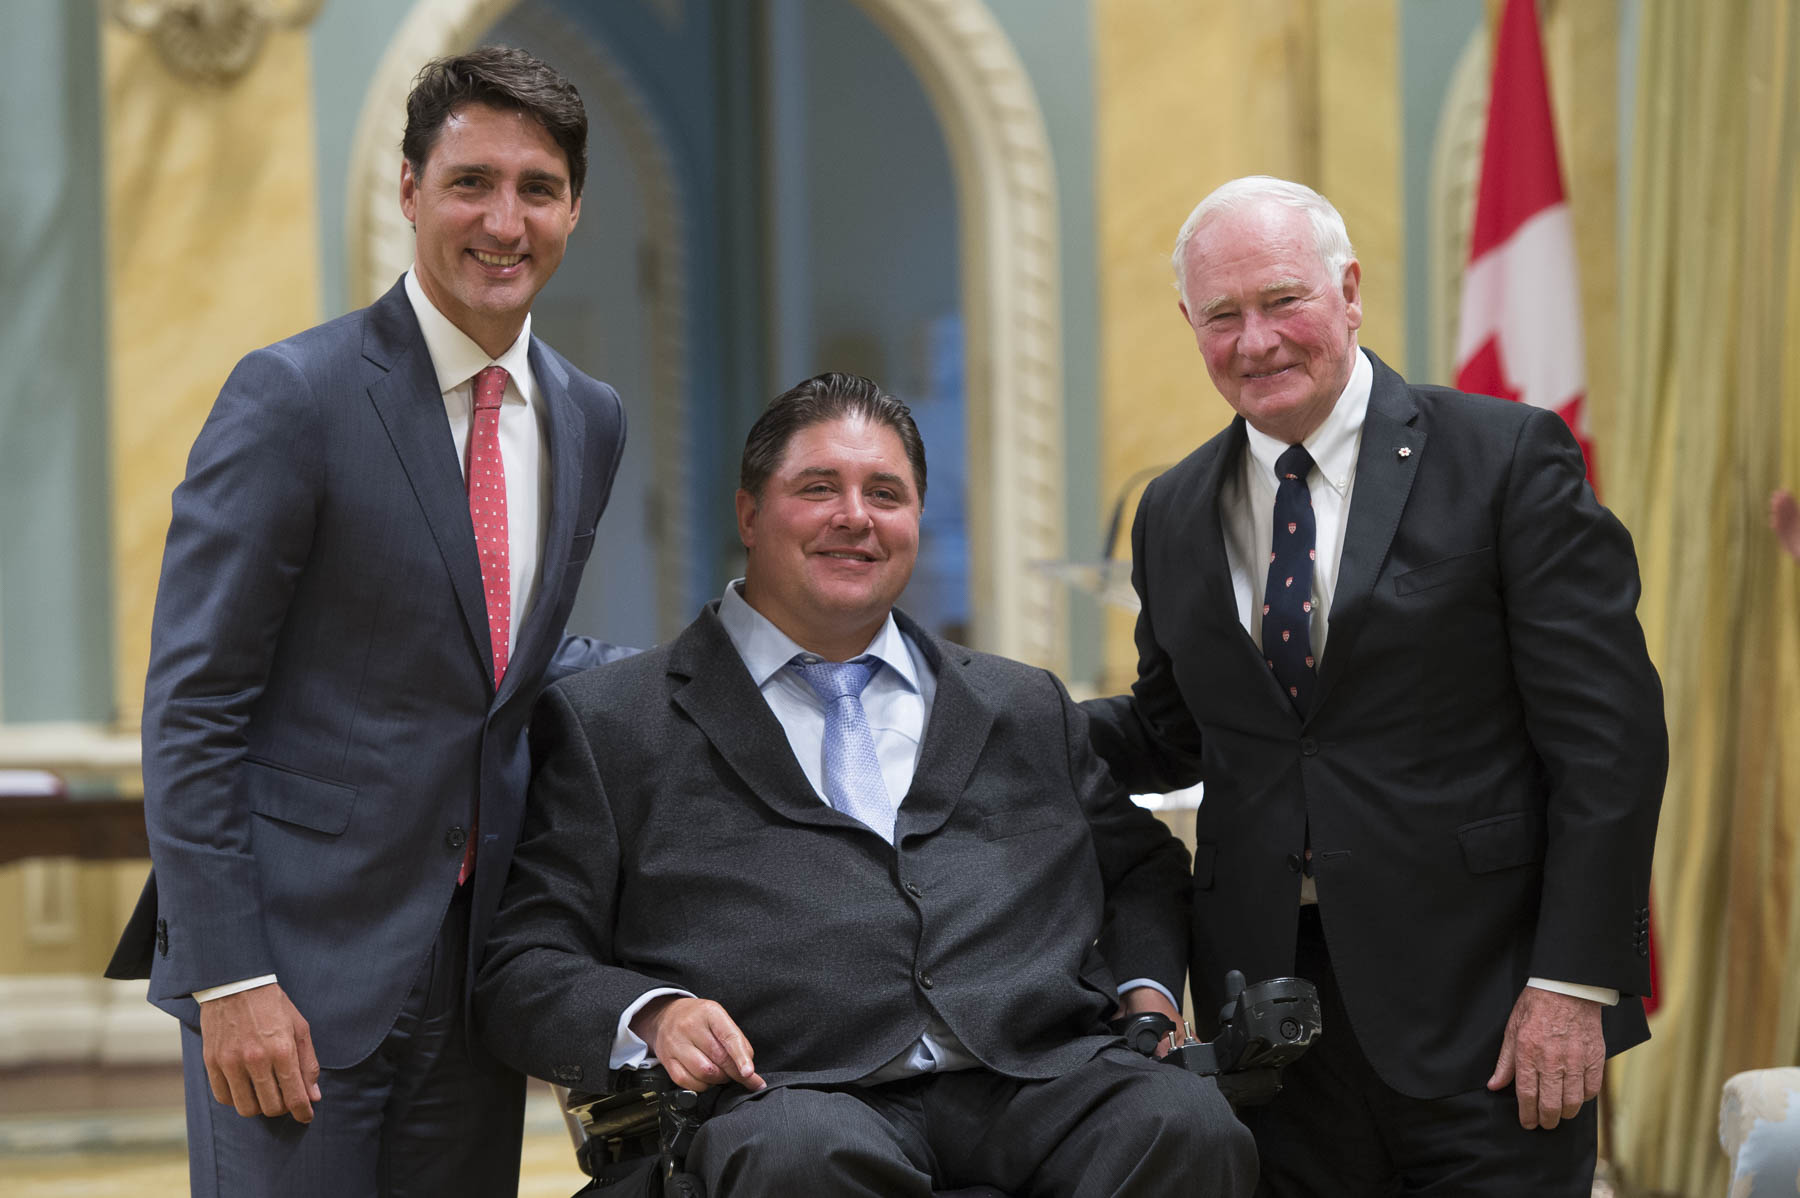 Kent Hehr, former Minister of Veterans Affairs and Associate Minister of National Defence, became Minister of Sport and Persons with Disabilities.